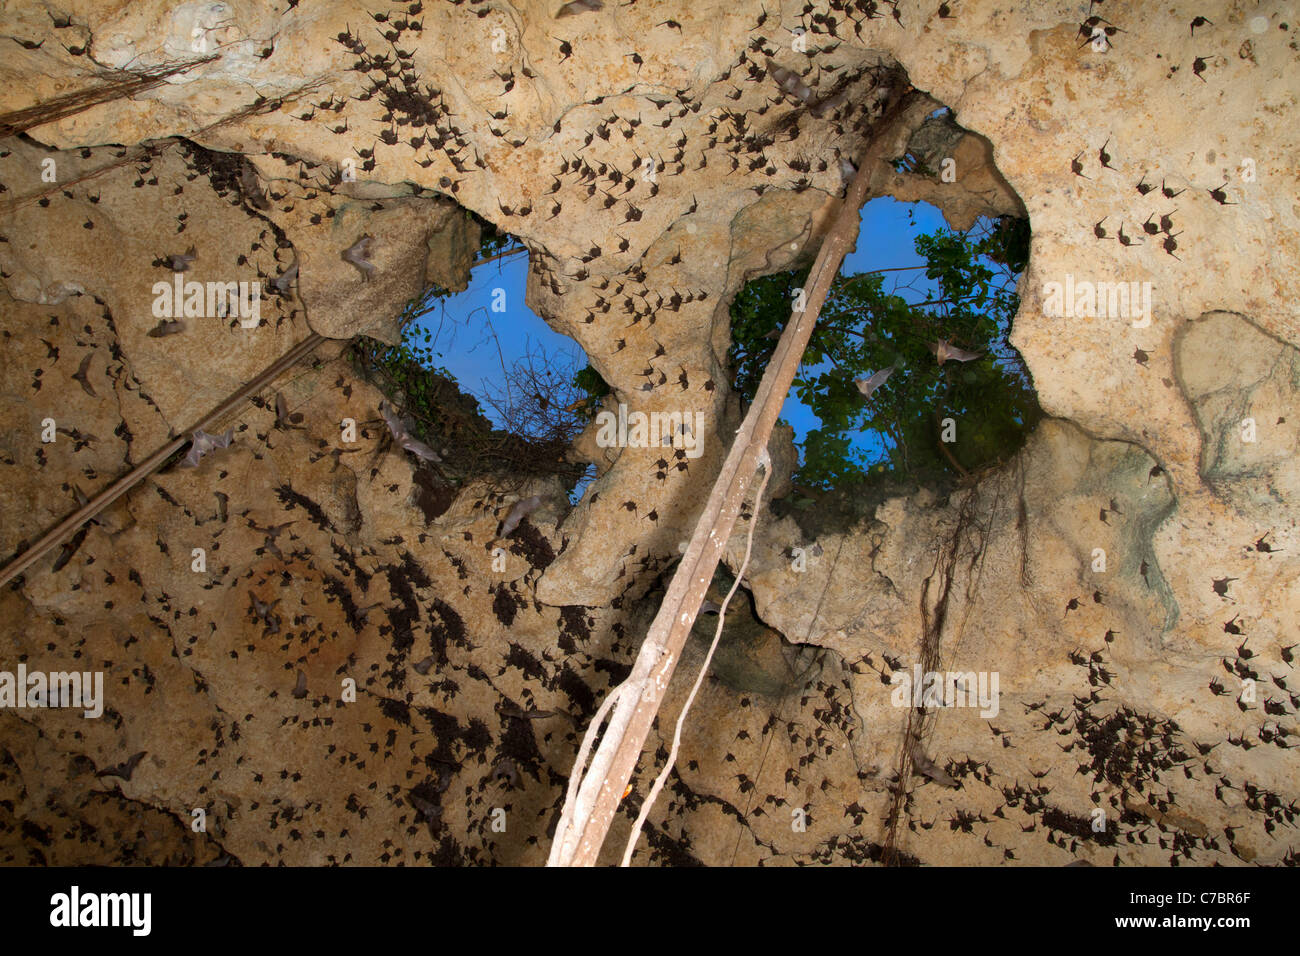 A cave with a large colony of the African Sheath-Tailed bats (Coleura afra). - Stock Image